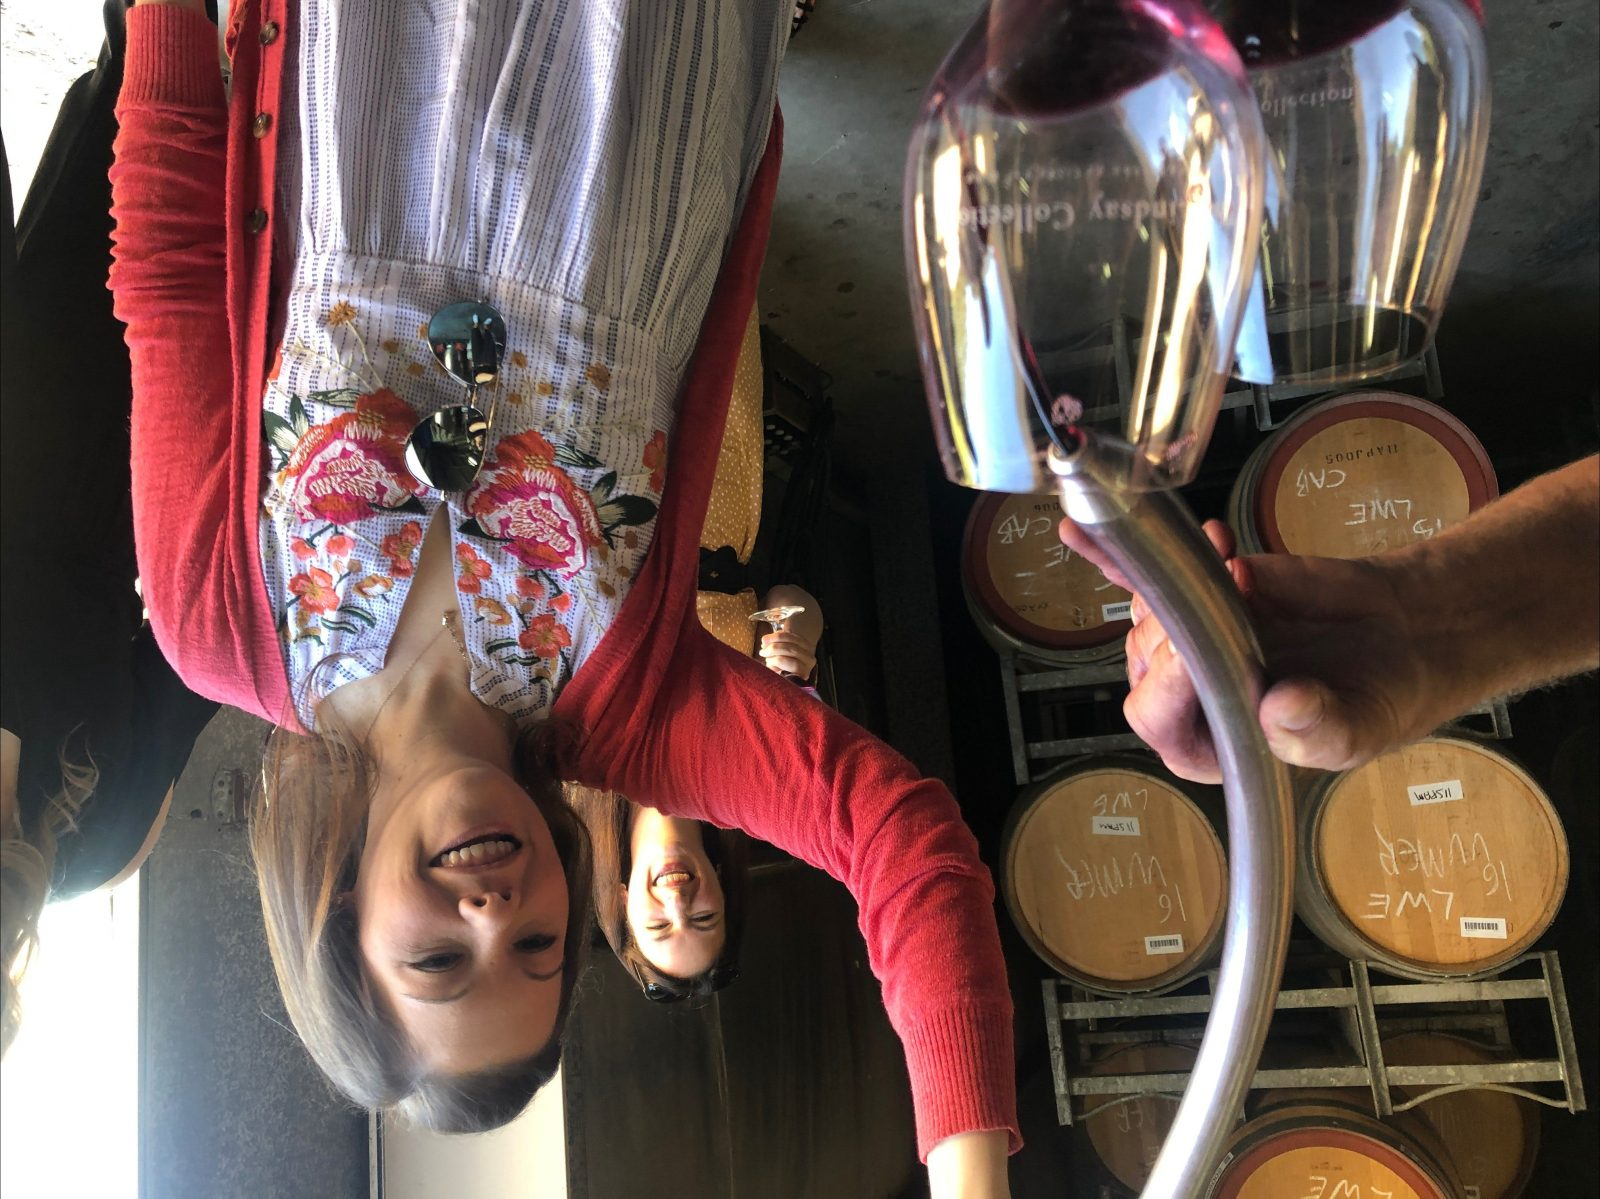 Get your hands dirty for barrel tasting